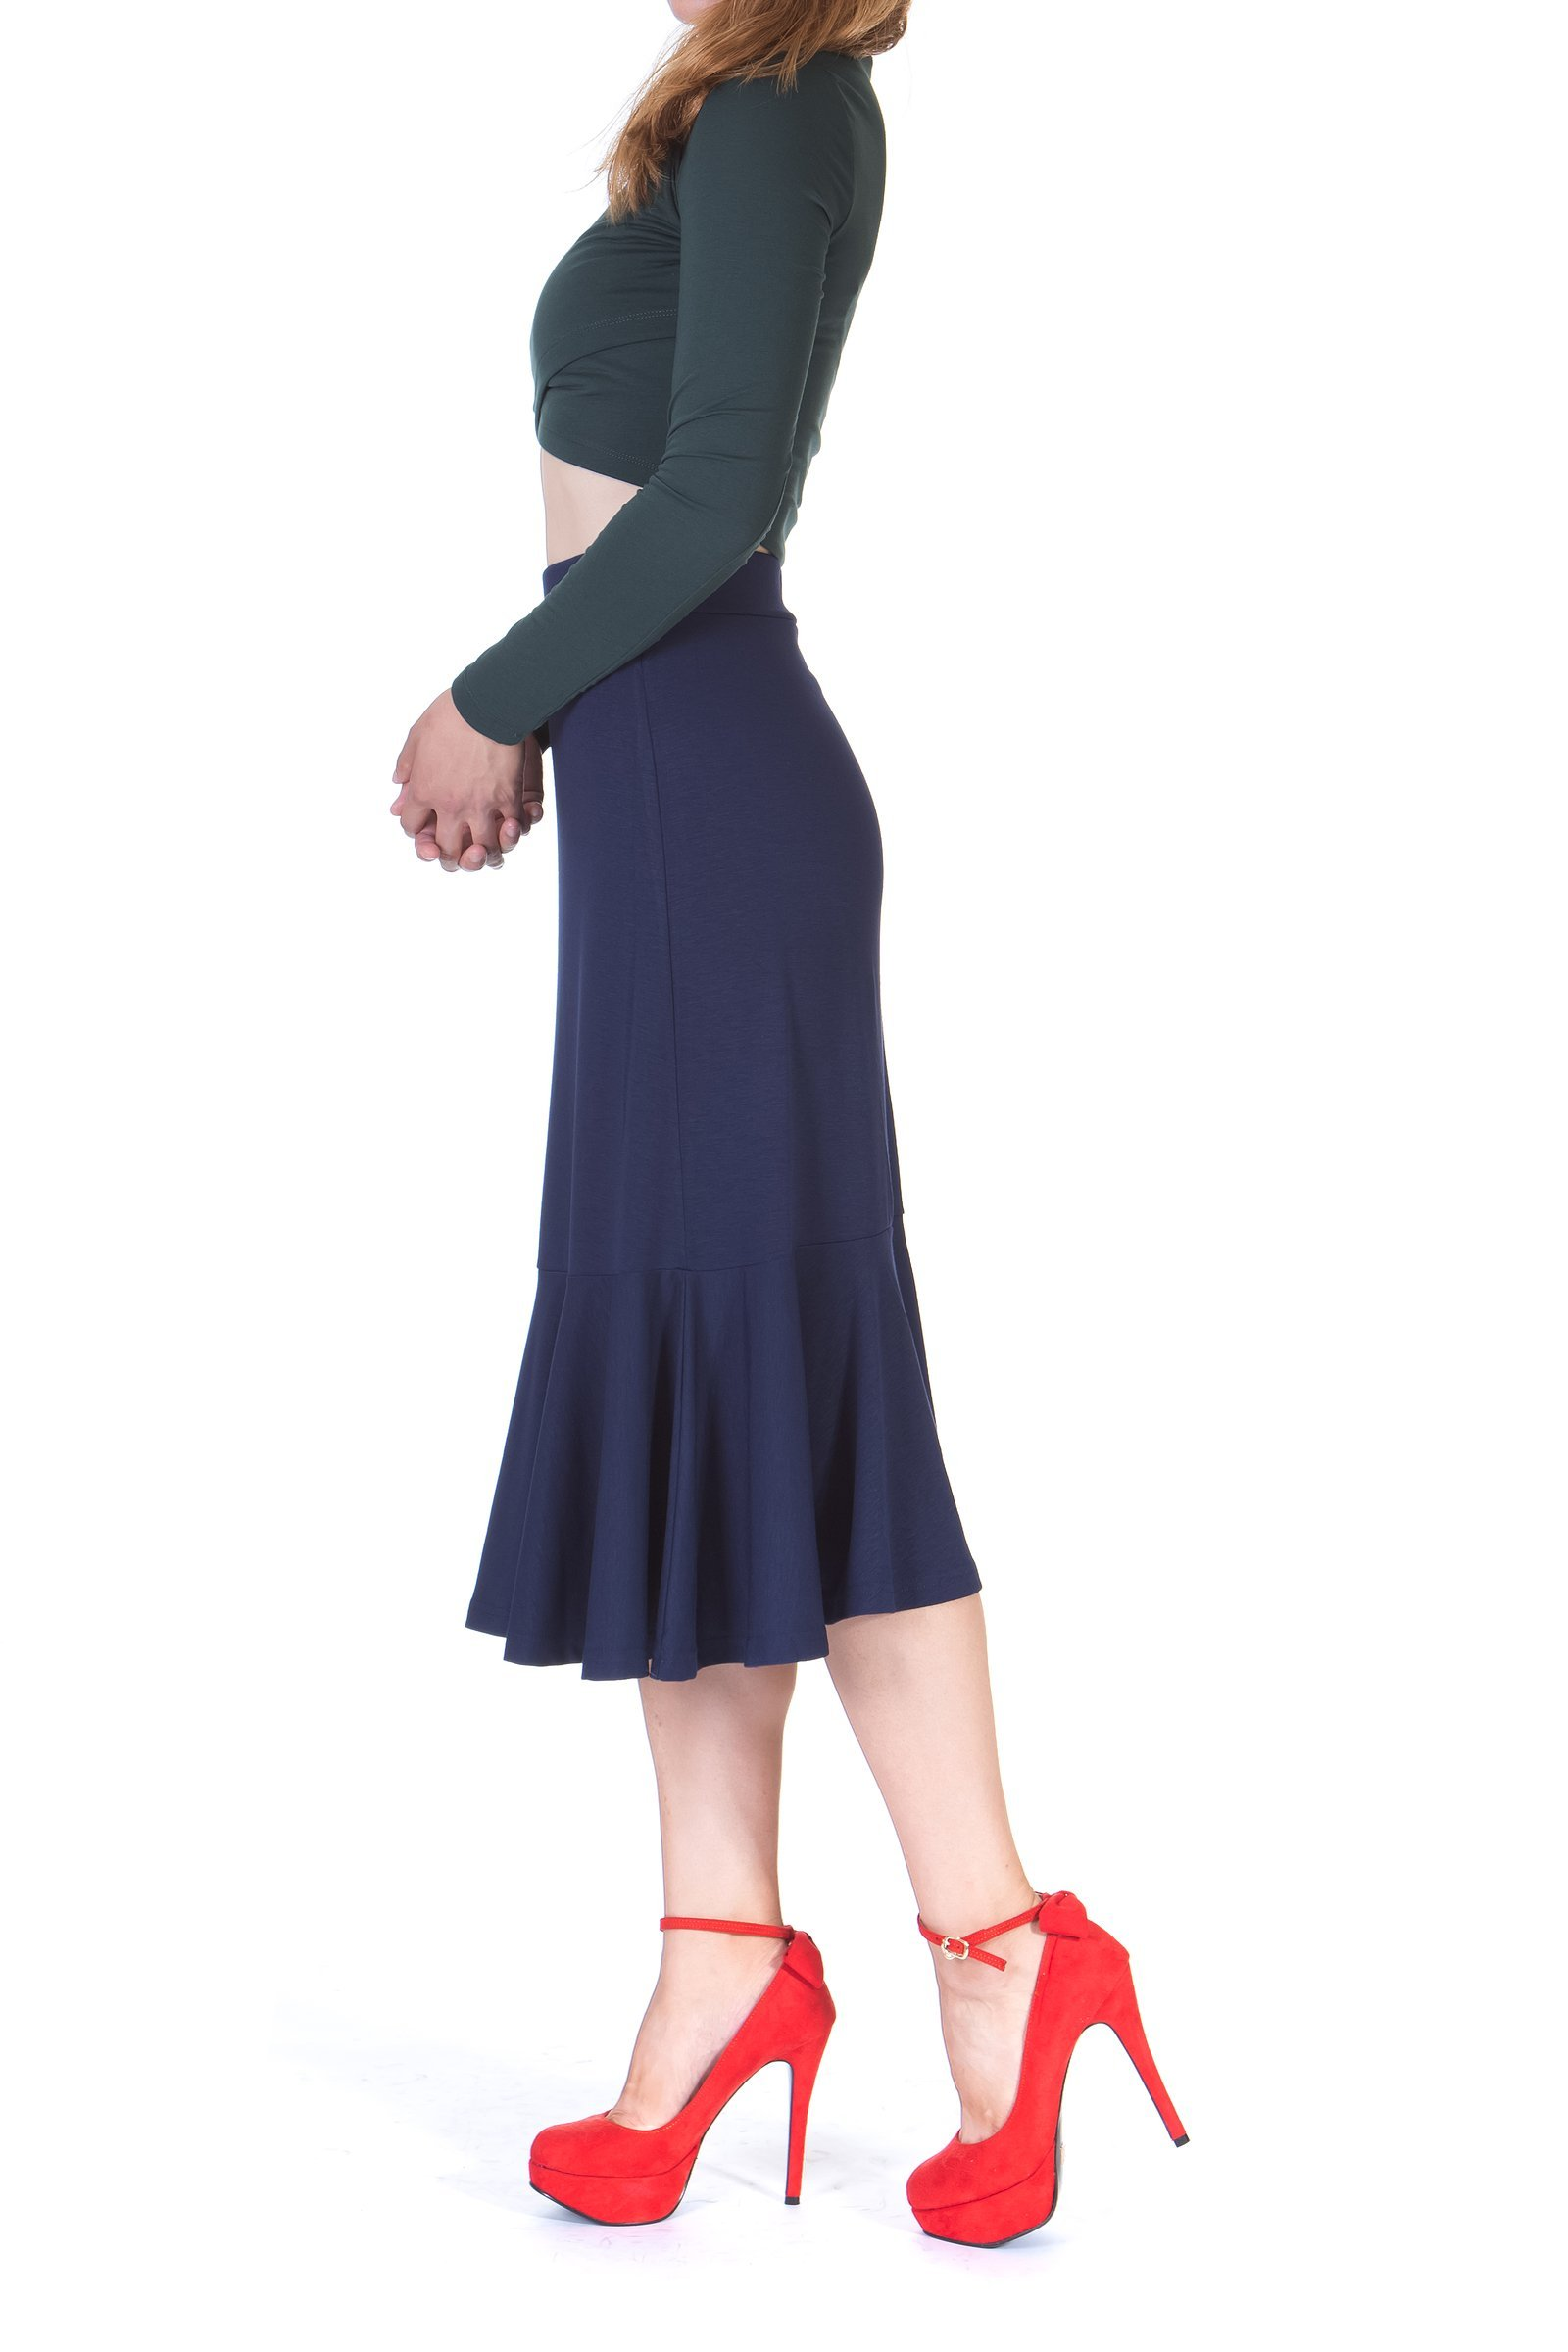 Flowy Elastic Waist Frilled Hem Fish Tail Mermaid Flared Midi Skirt Navy 4